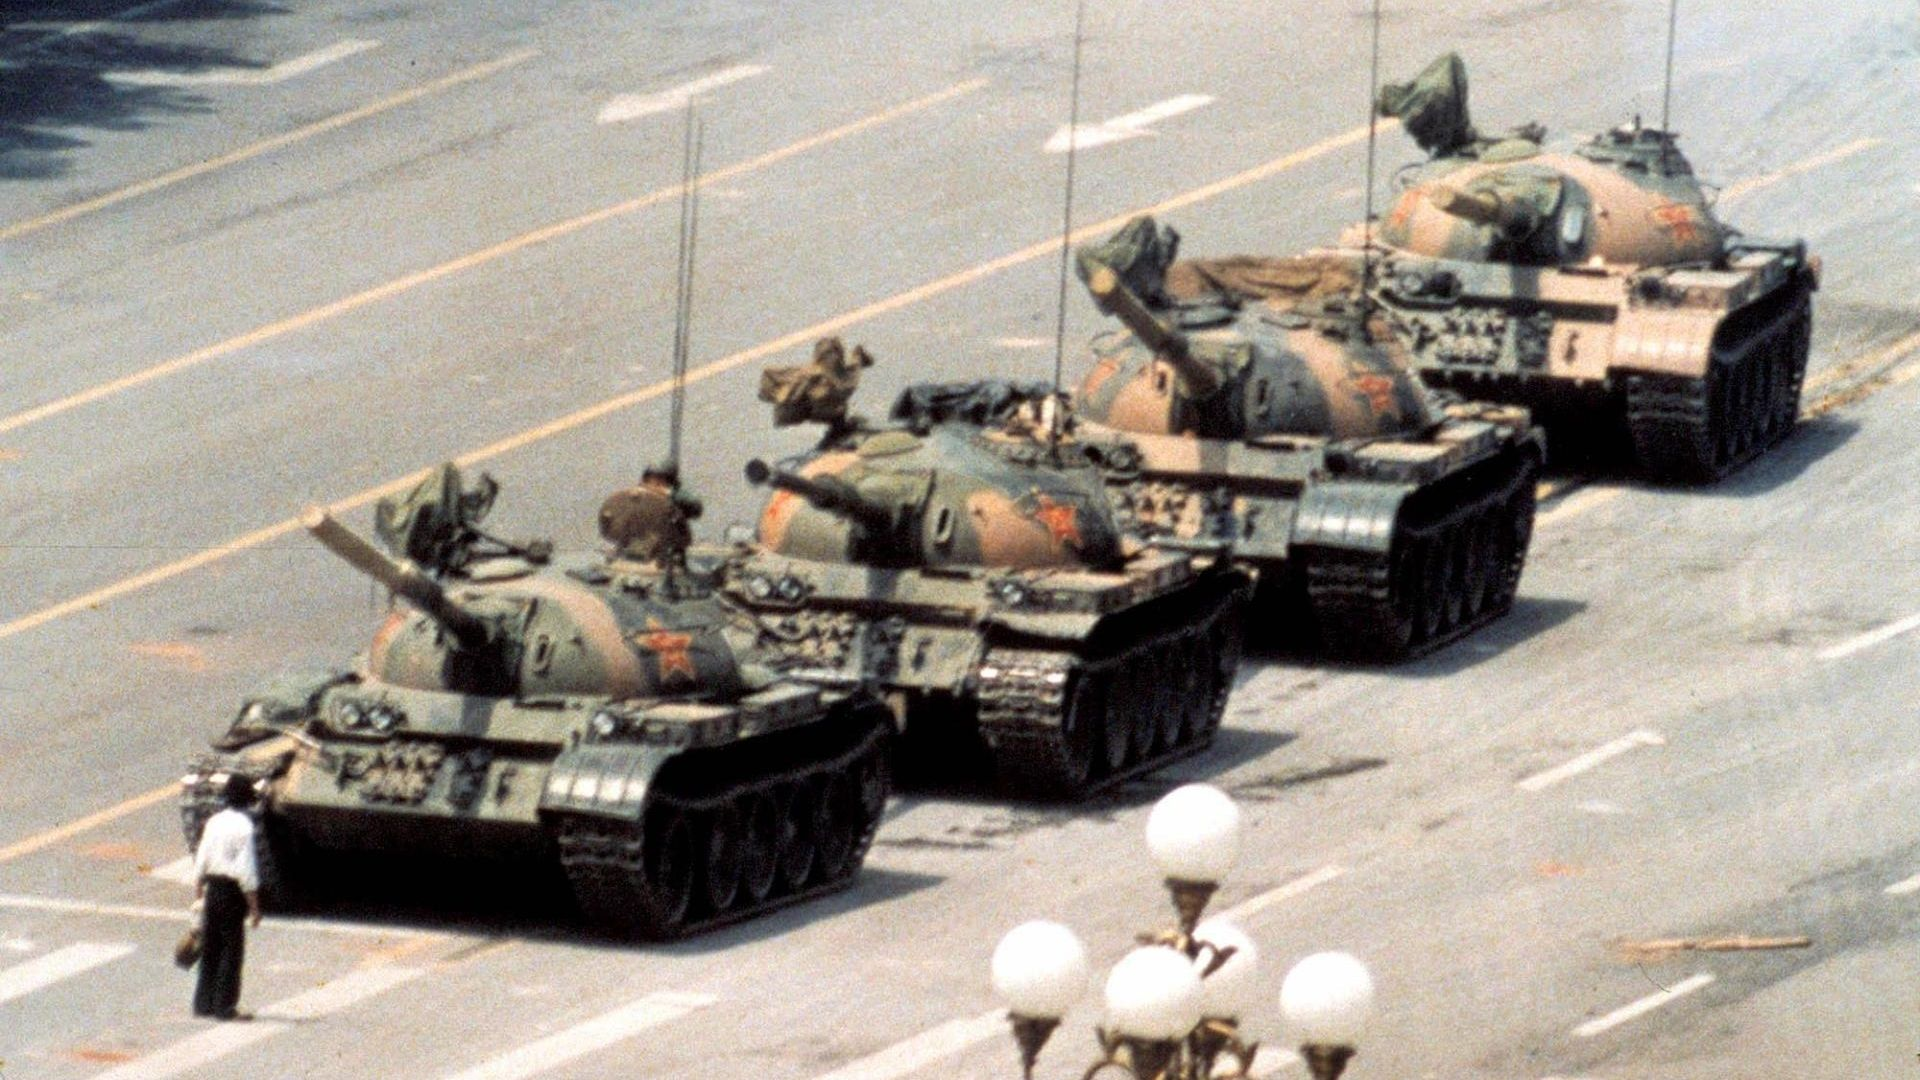 Tiananmen Square 1989 Tank Man Powerful Pictures Famous Photos